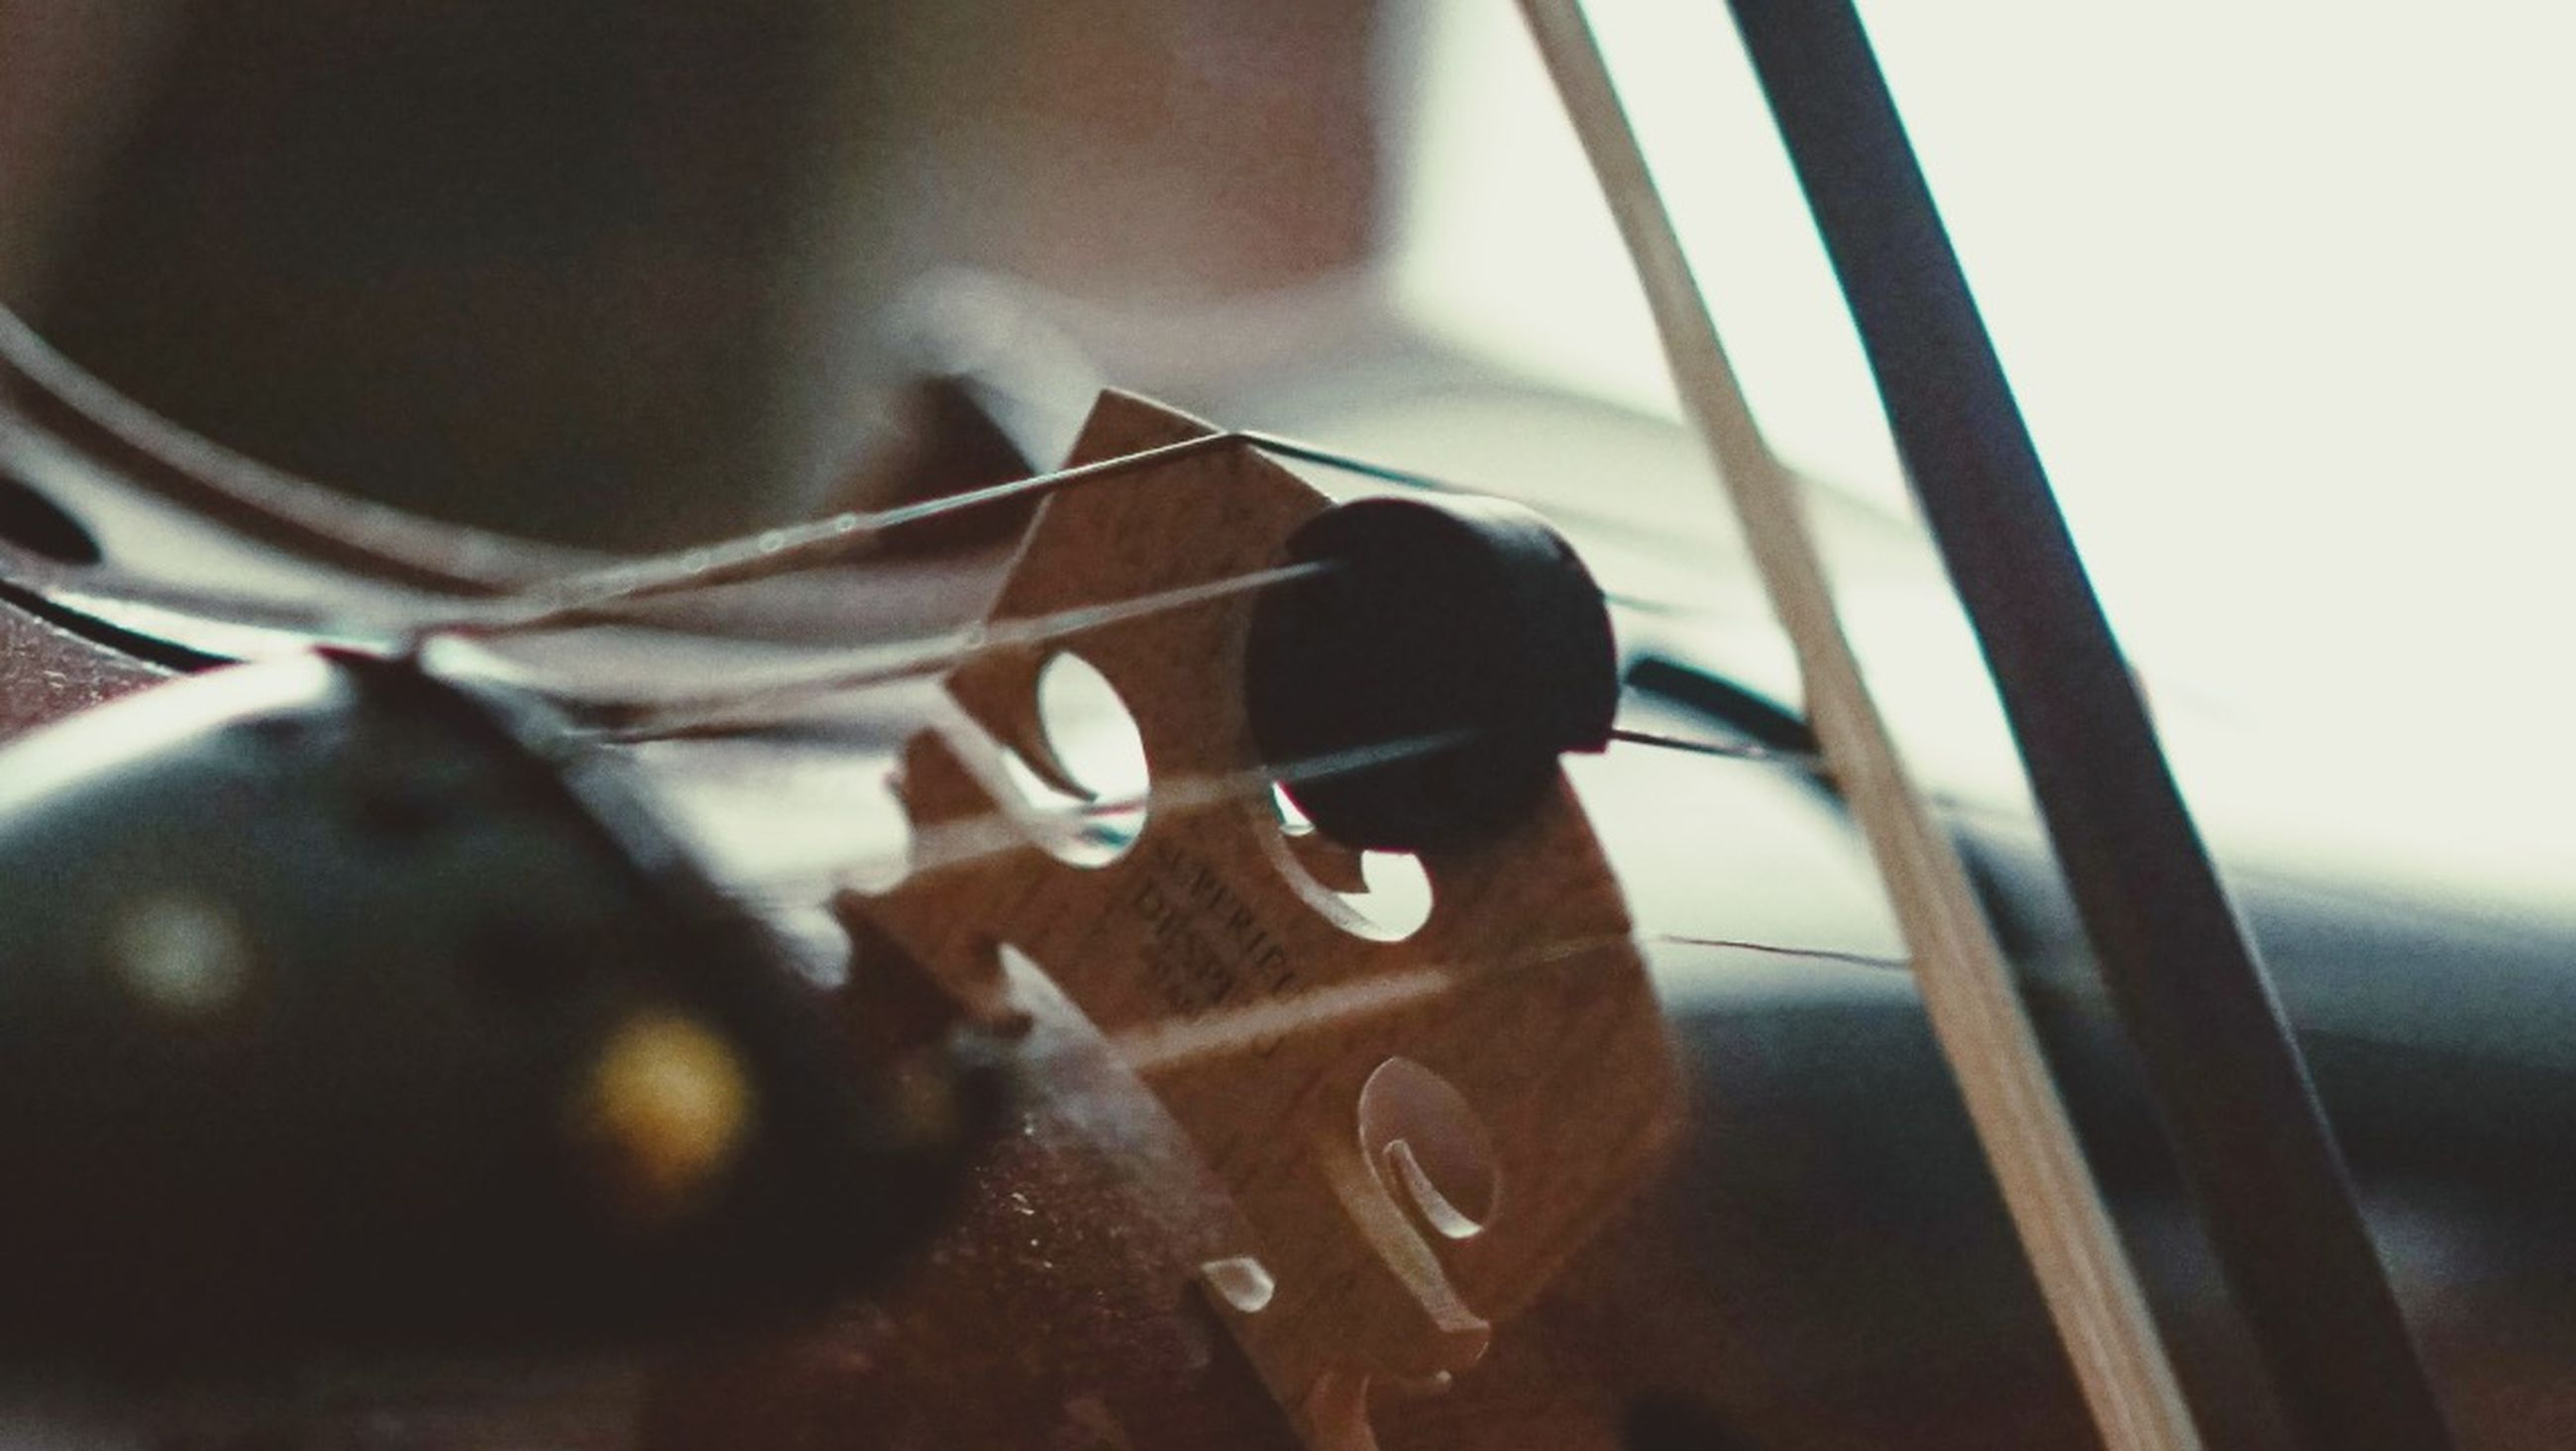 indoors, close-up, focus on foreground, still life, metal, selective focus, no people, single object, home interior, table, musical instrument, music, part of, art and craft, day, black color, wood - material, animal representation, window, art